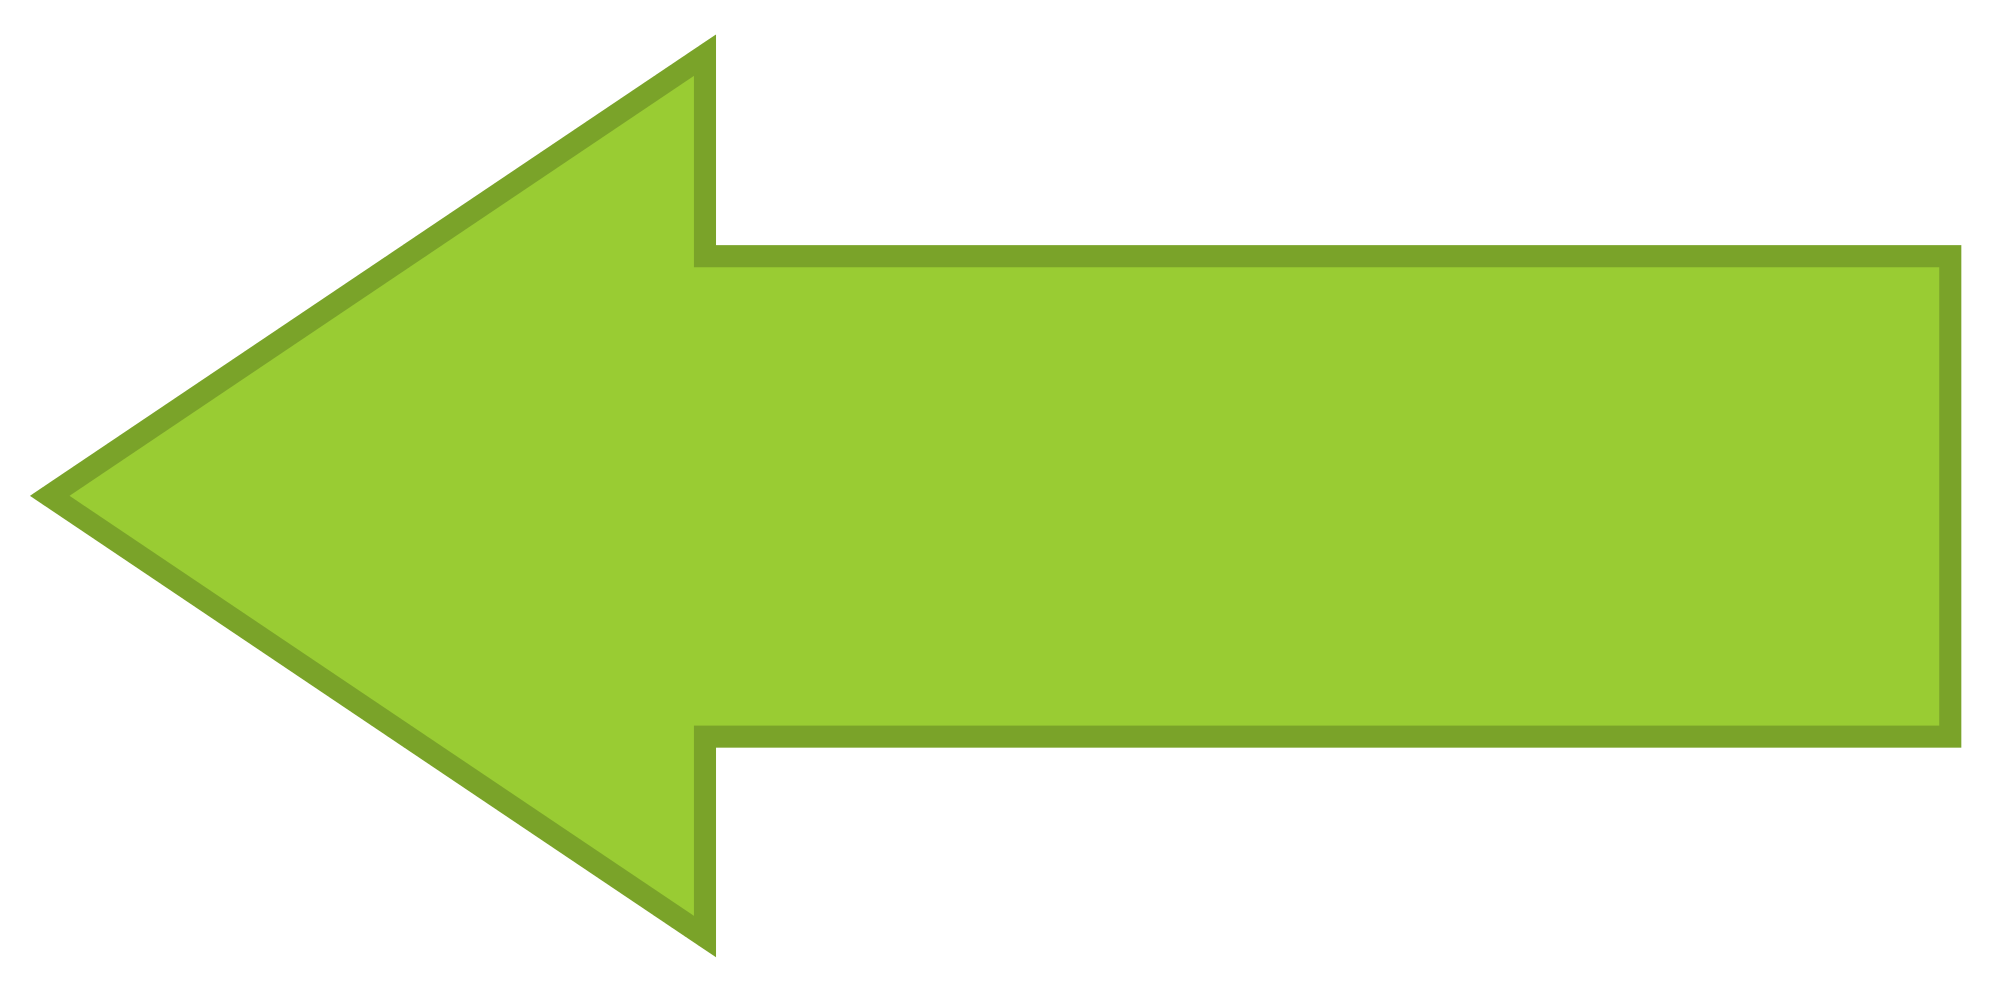 Clipart of left facing arrow svg black and white library File:Arrow facing left - Green.svg - Wikimedia Commons svg black and white library